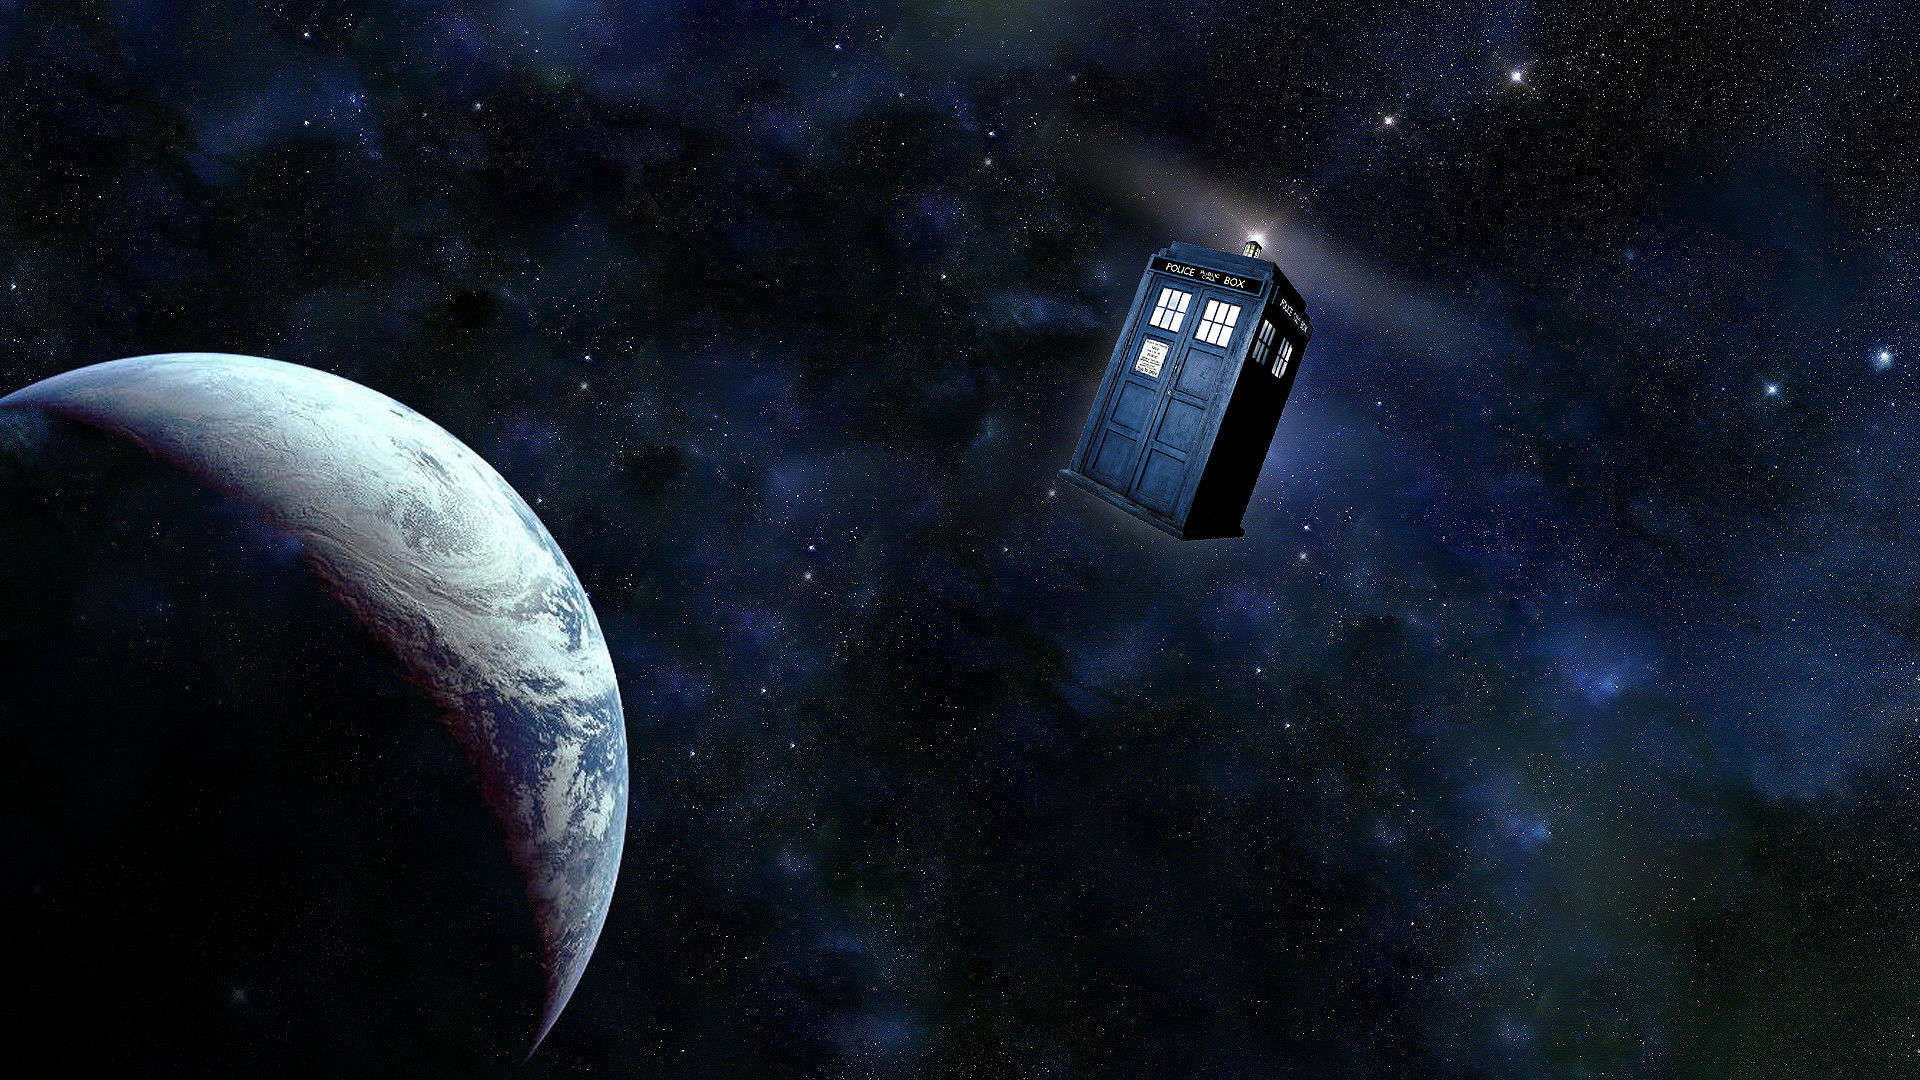 1920x1080  Tardis In Space Wallpaper Hd Images & Pictures - Becuo